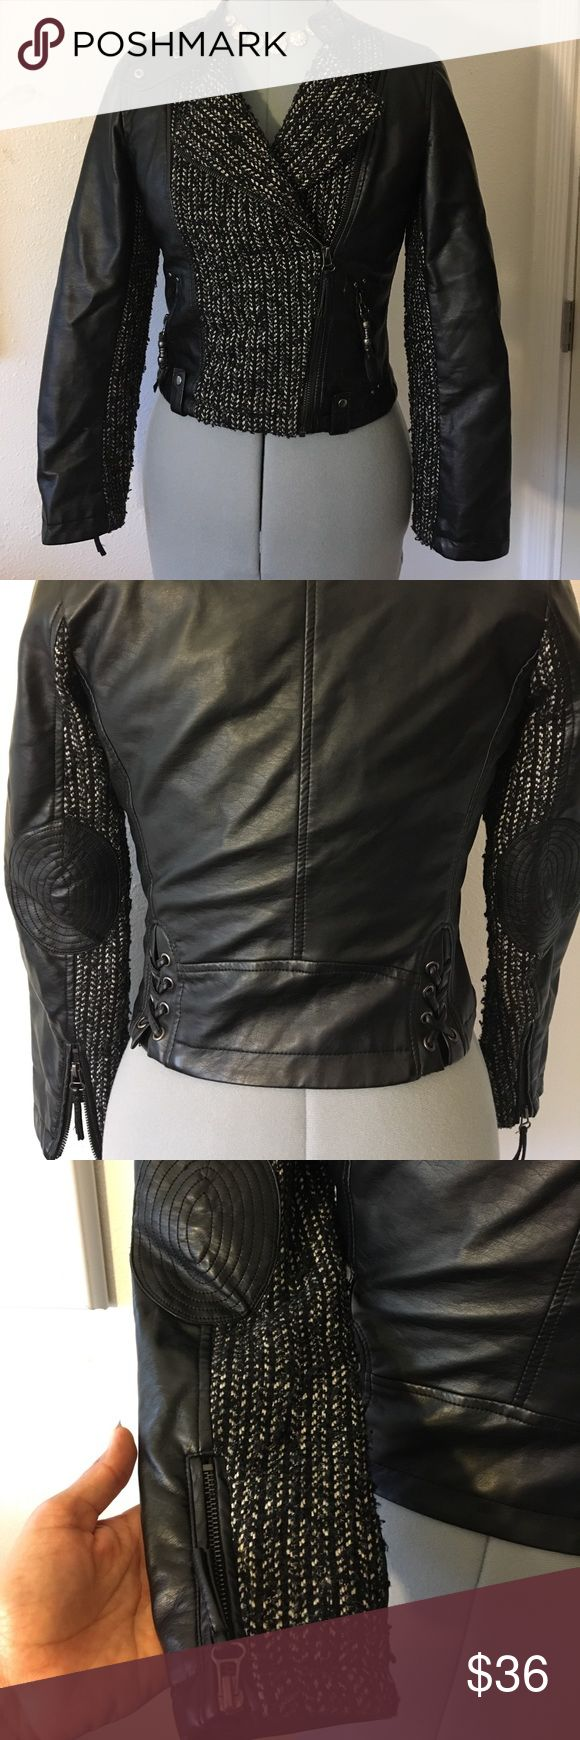 Jessica Simpson Girls Jacket Black, beautiful jacket. Fits a size S women . Meant for girls age 14-16 . Zippers work very well Jessica Simpson Jackets & Coats